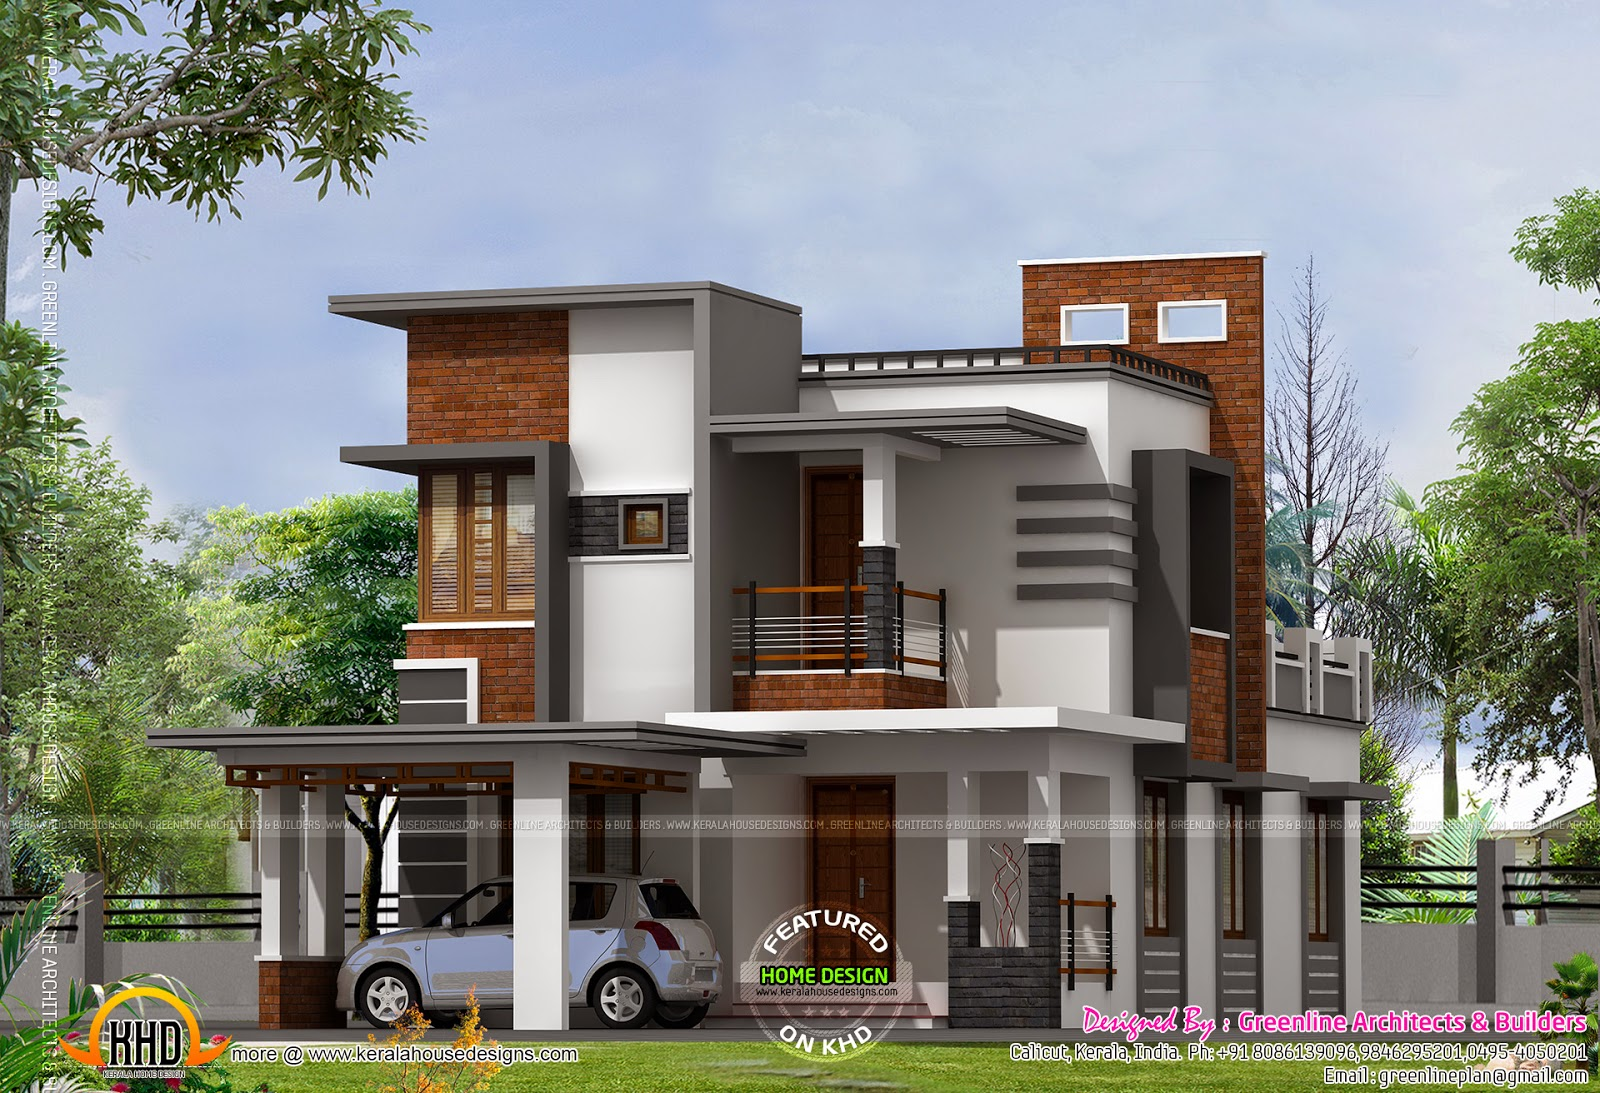 Low cost contemporary house kerala home design and floor for New house designs and prices